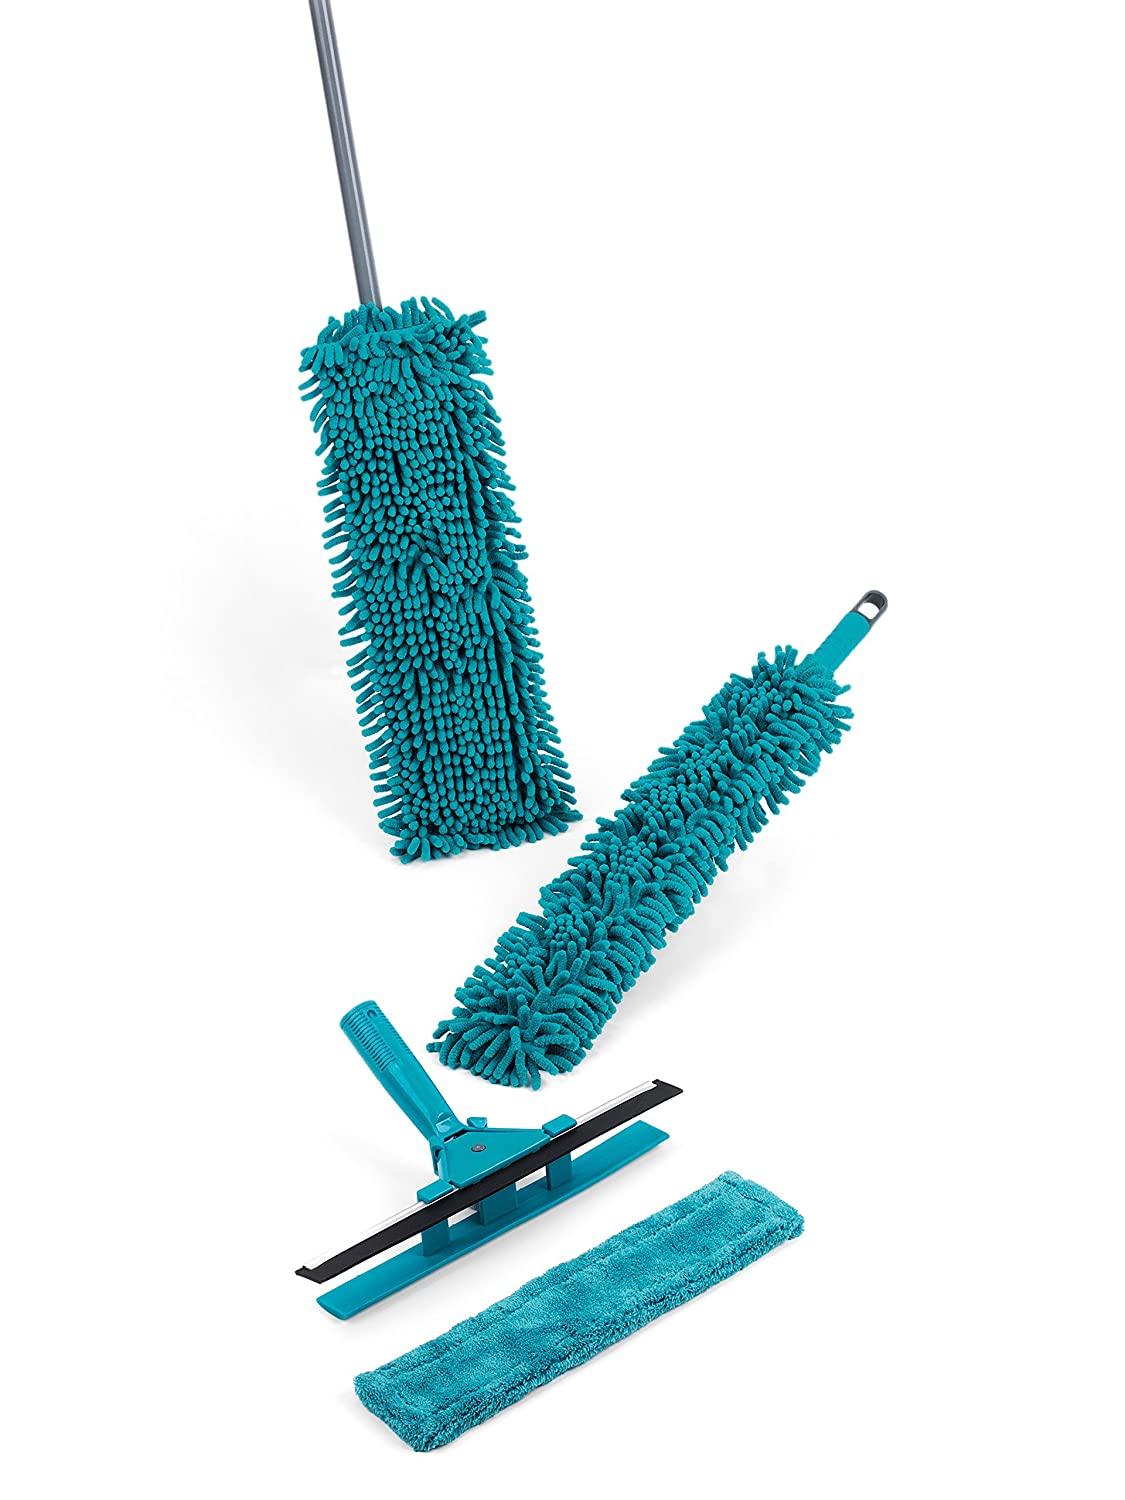 Beldray LA029959TQ 3 In 1 Spray Cleaning Duster Set, Turquoise